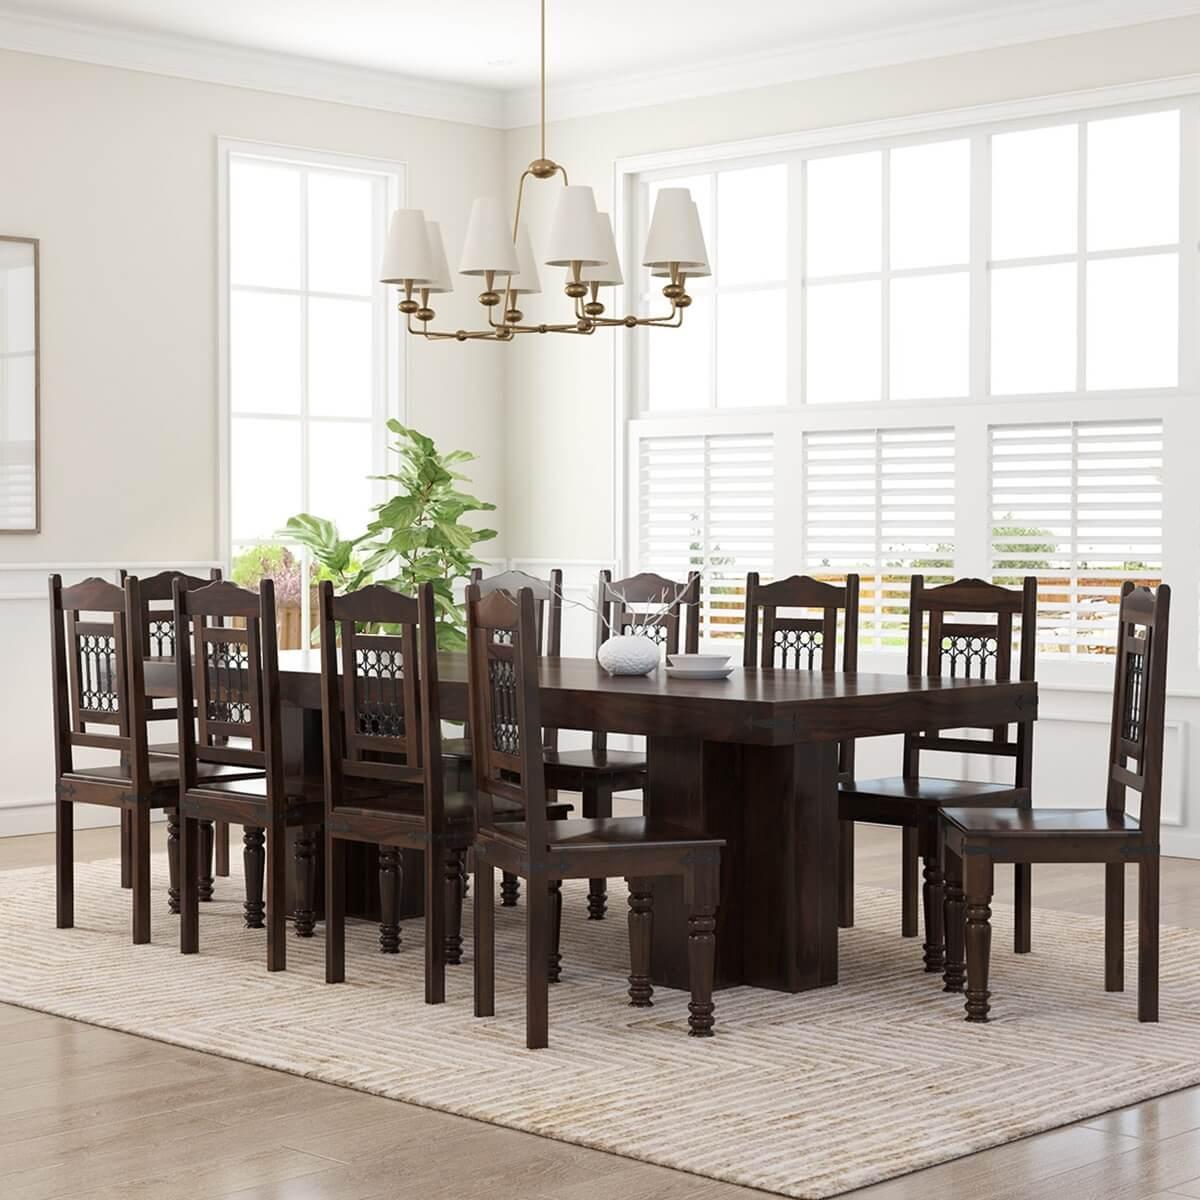 Dallas Classic Solid Wood Double Pedestal Dining Set For 8 People